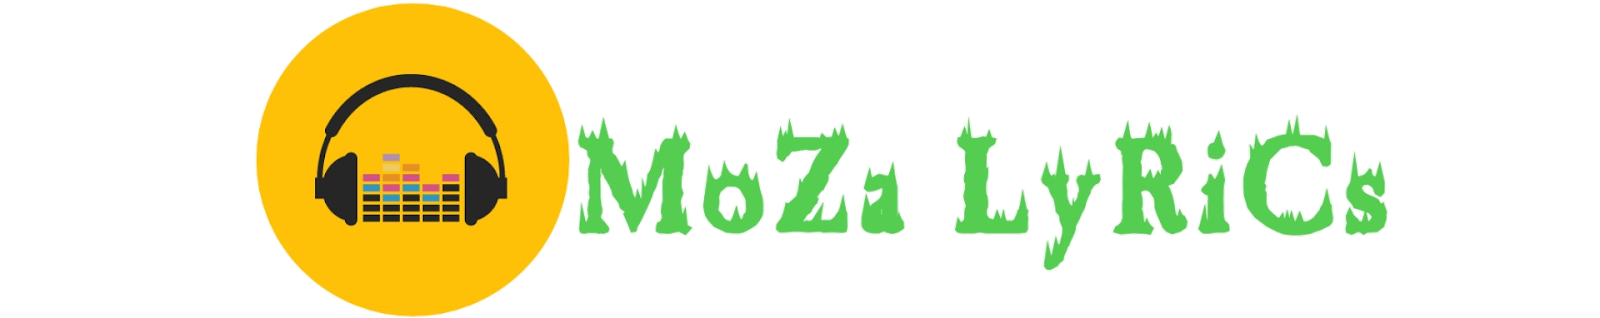 Mozalyrics.com is a huge collection of song lyrics, album information